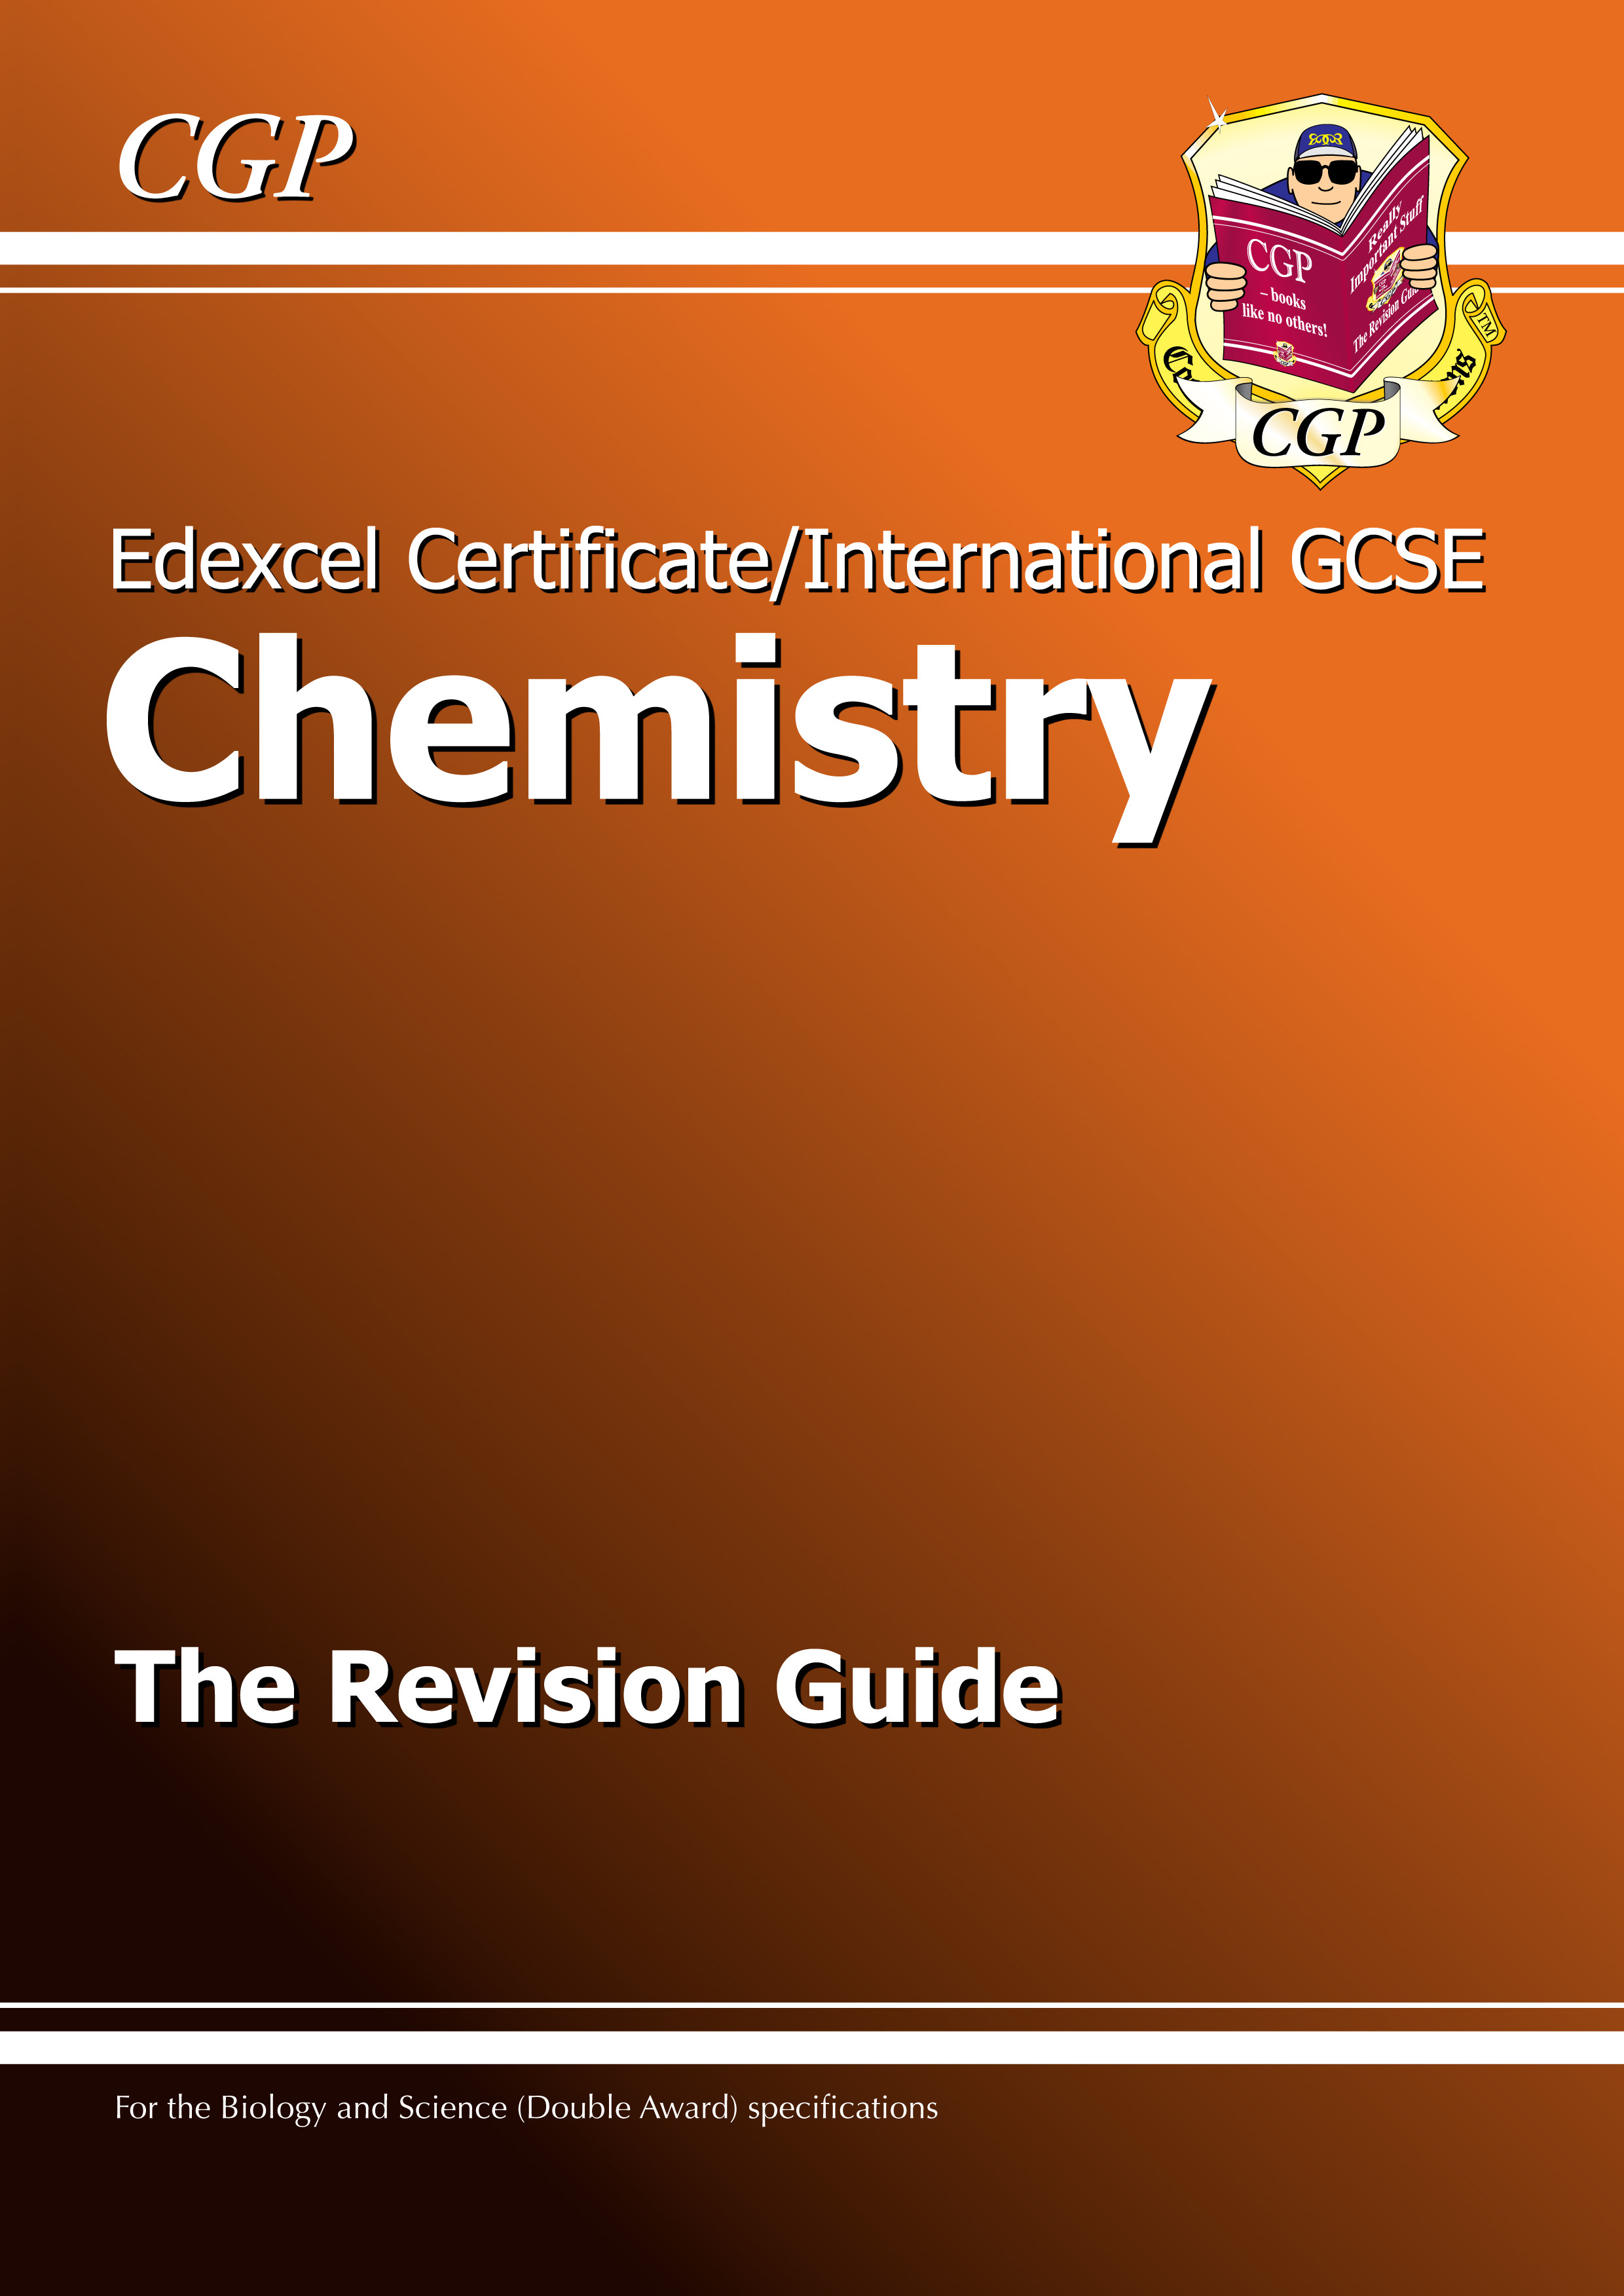 CERI41DK - Edexcel International GCSE Chemistry Revision Guide (A*-G course)